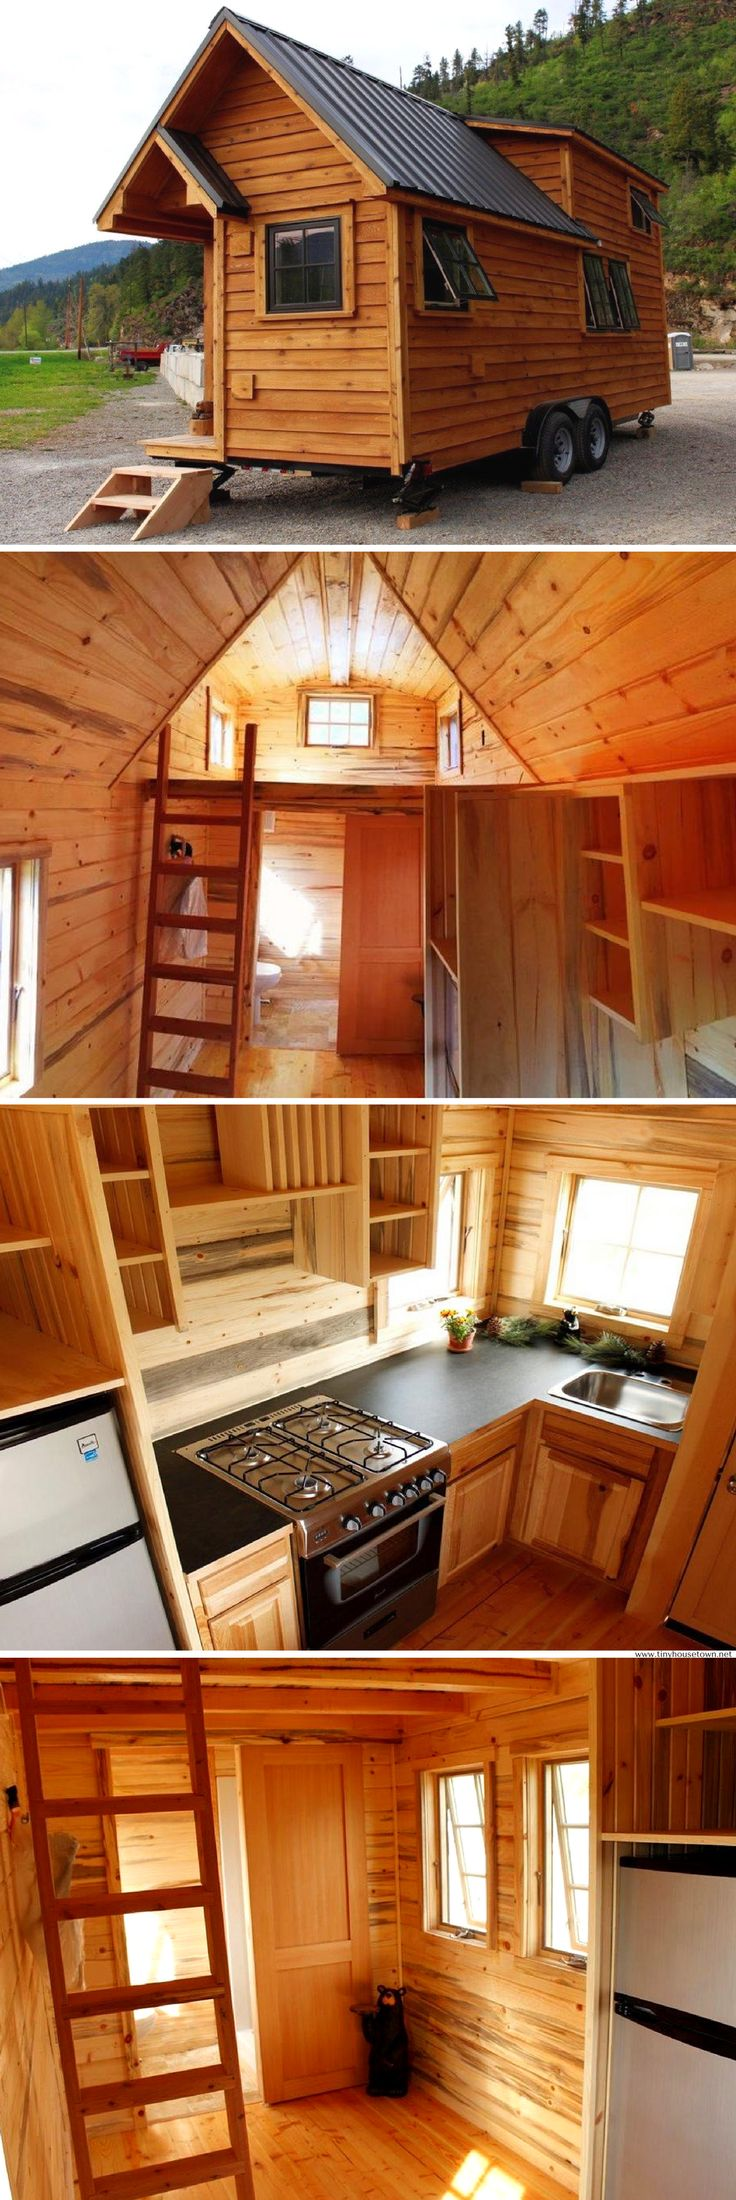 Tiny house uk5 log house planning permission house plans 2017 on log - A Cabin With Just 200 Sq Ft Of Space Tiny House